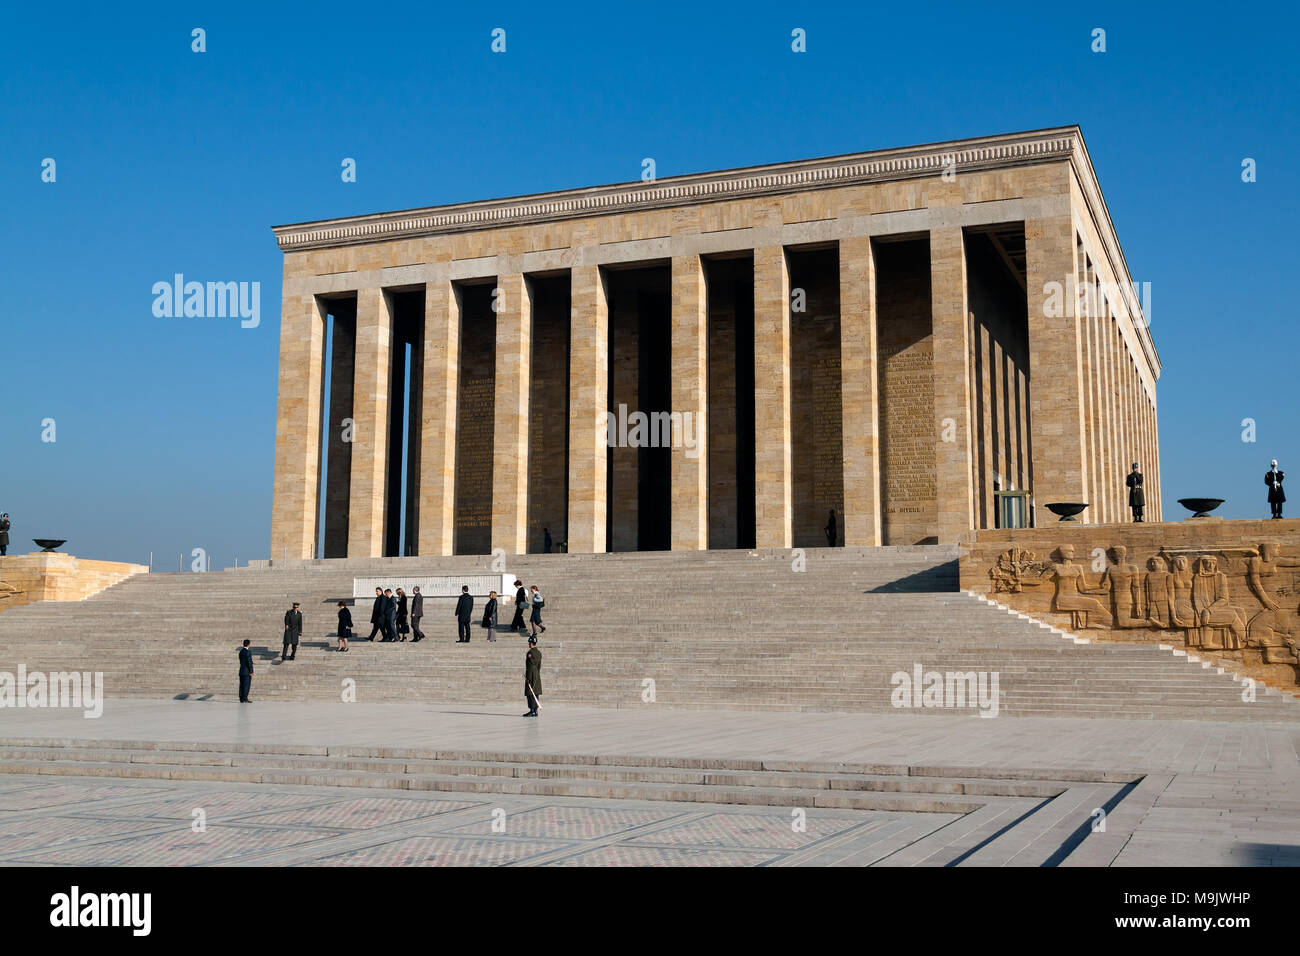 Ataturk Mausoleum, Anitkabir, memorial tomb of Mustafa Kemal Ataturk, first president of Turkey. ANKARA, TURKEY - DECEMBER 08, 2010 Stock Photo